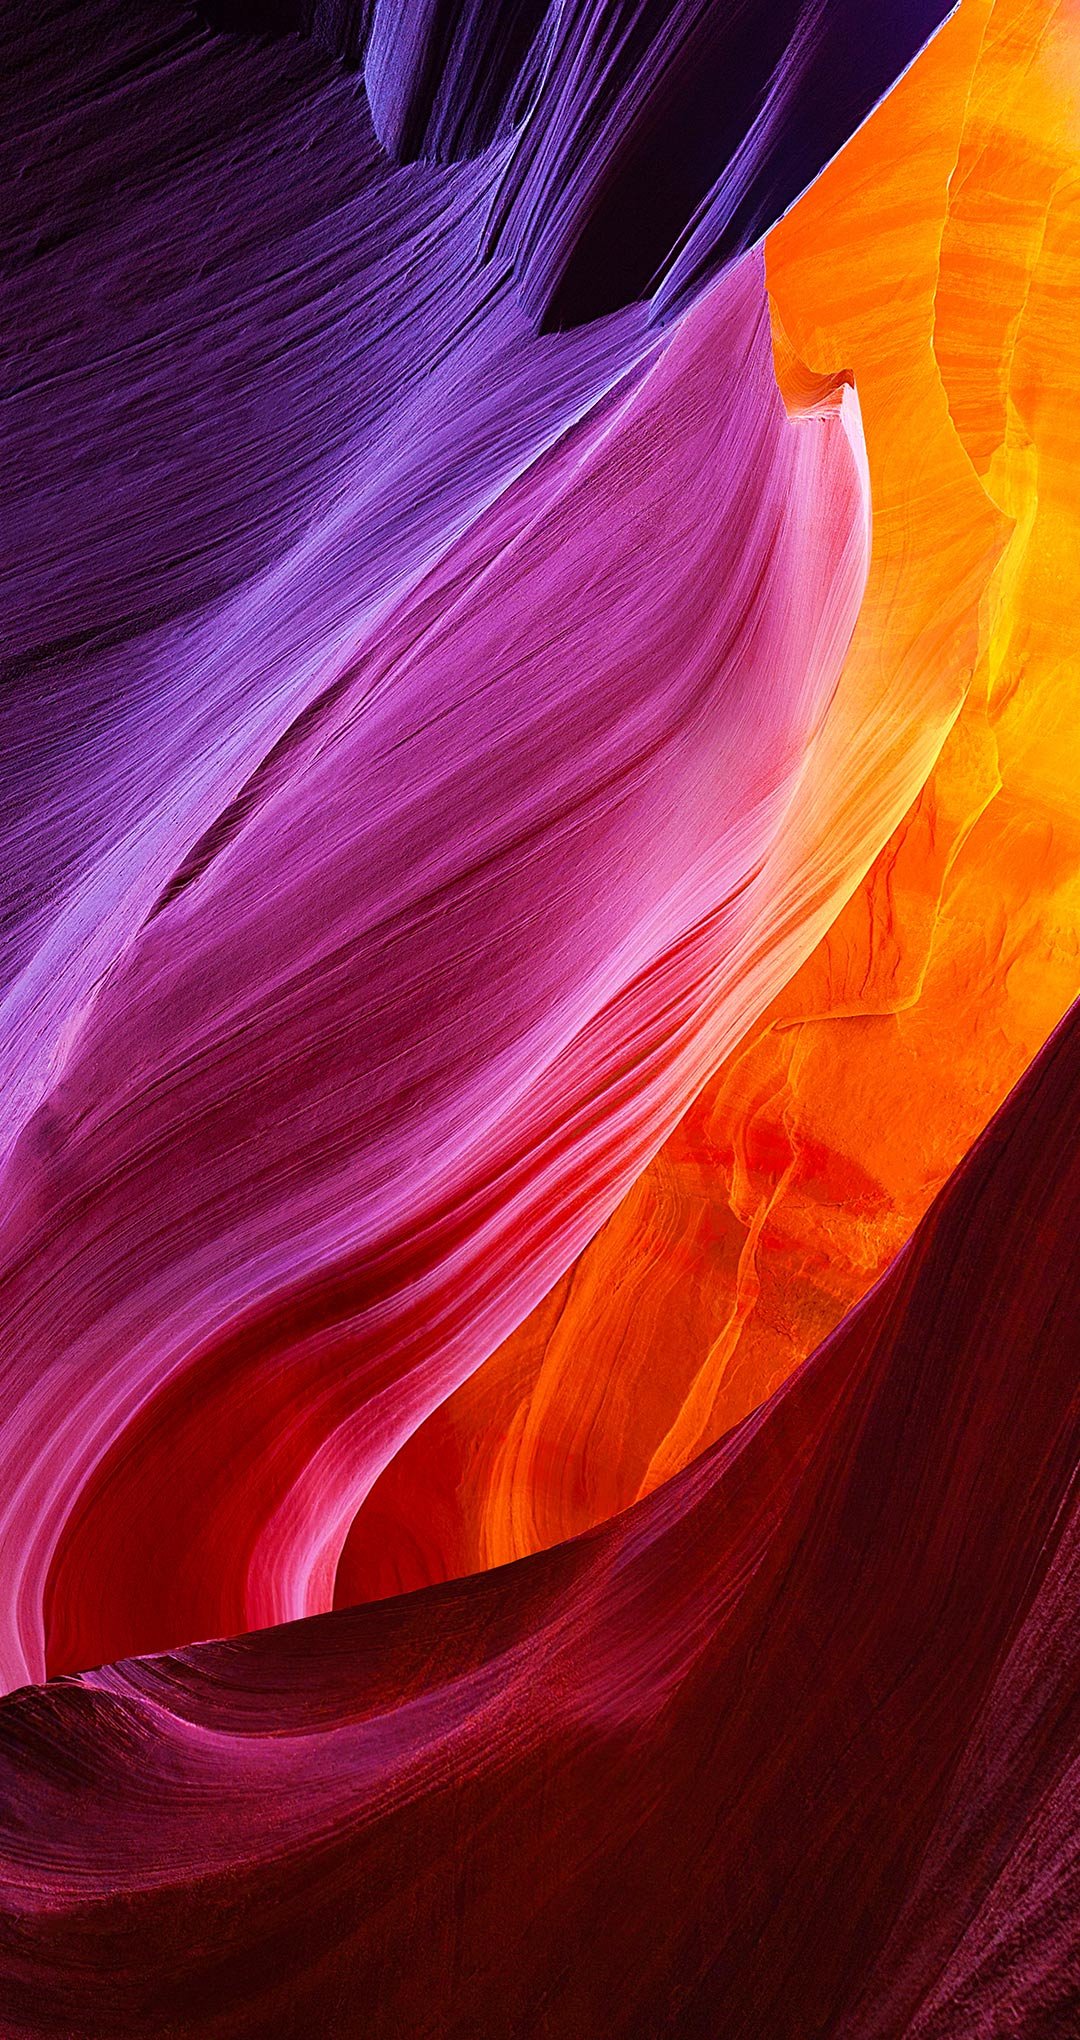 mi mix and mi note 2 stock wallpaper